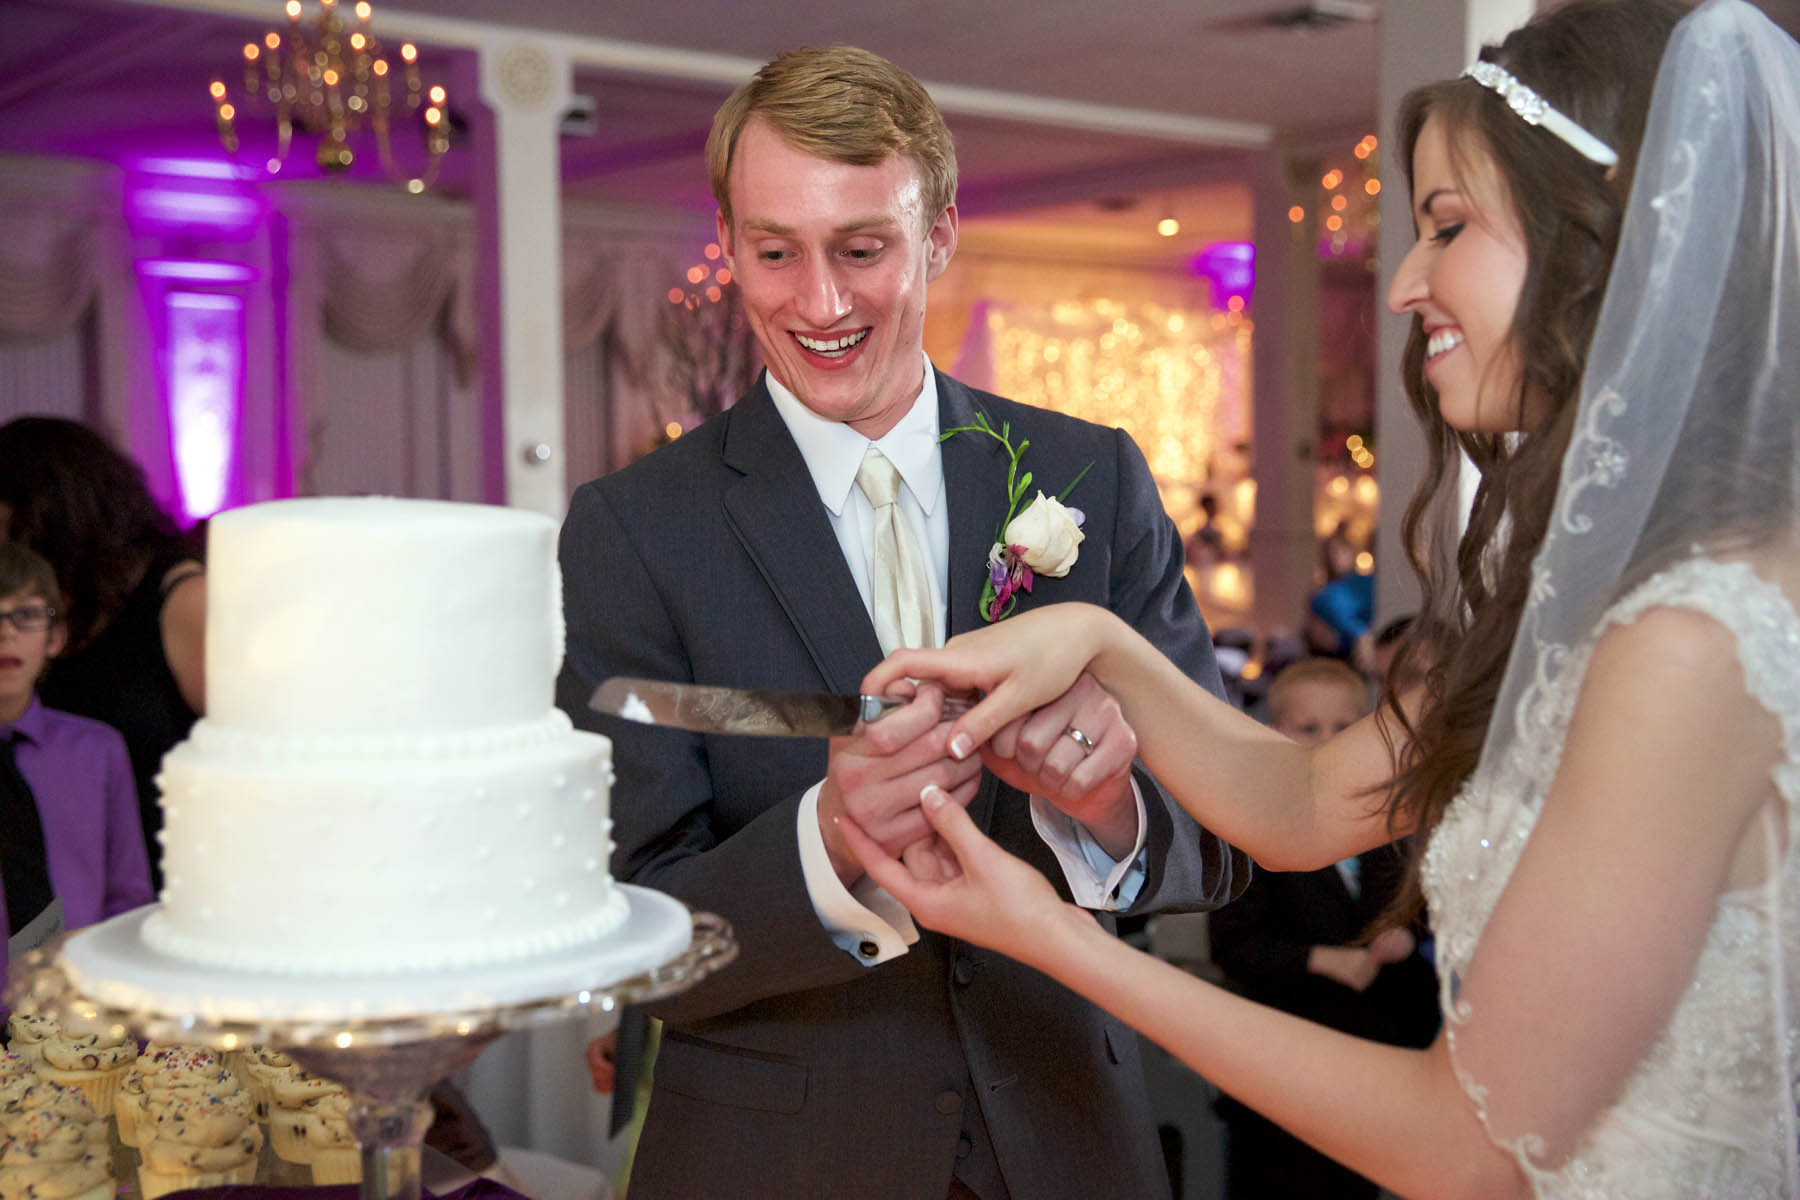 Cake cutting, Alissa & Brandon's wedding reception at Hamilton's 110 North East. Wedding photography by Tiffany & Steve Warmowski.